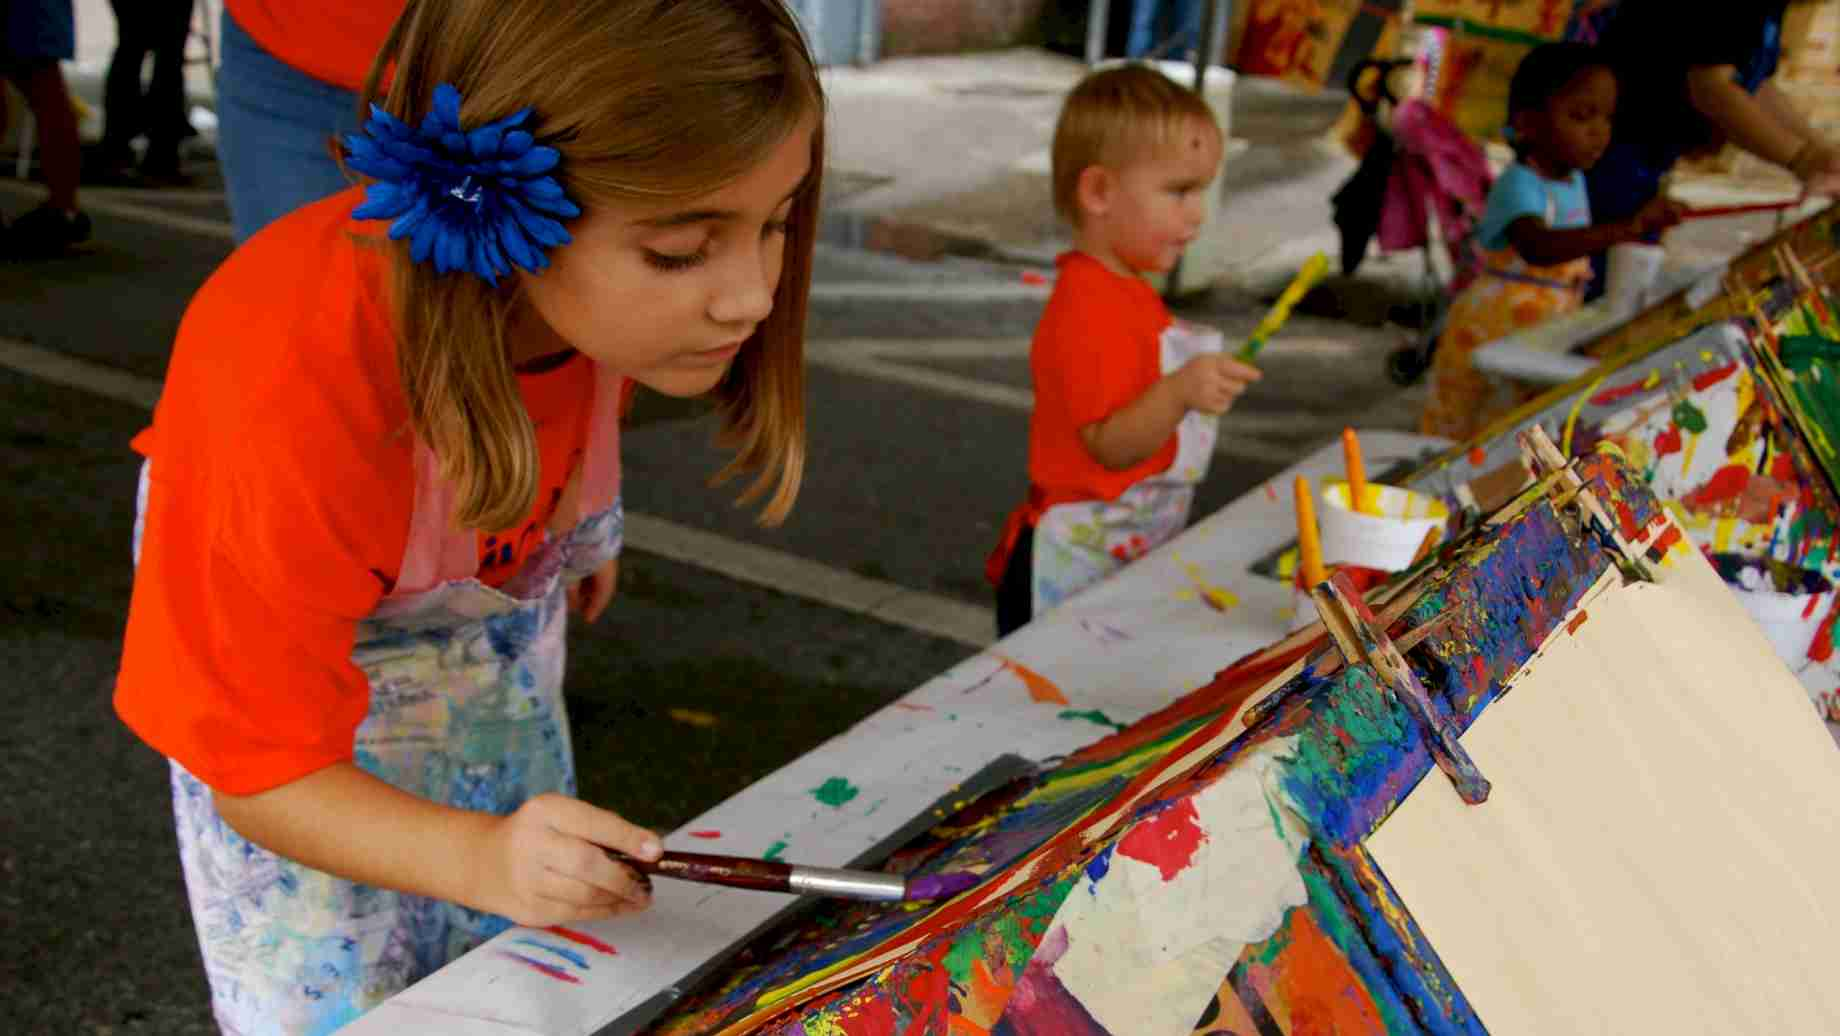 The painting easels are always a popular activity area at the annual Imagination Station sponsored by the UF Art Education program each Fall.